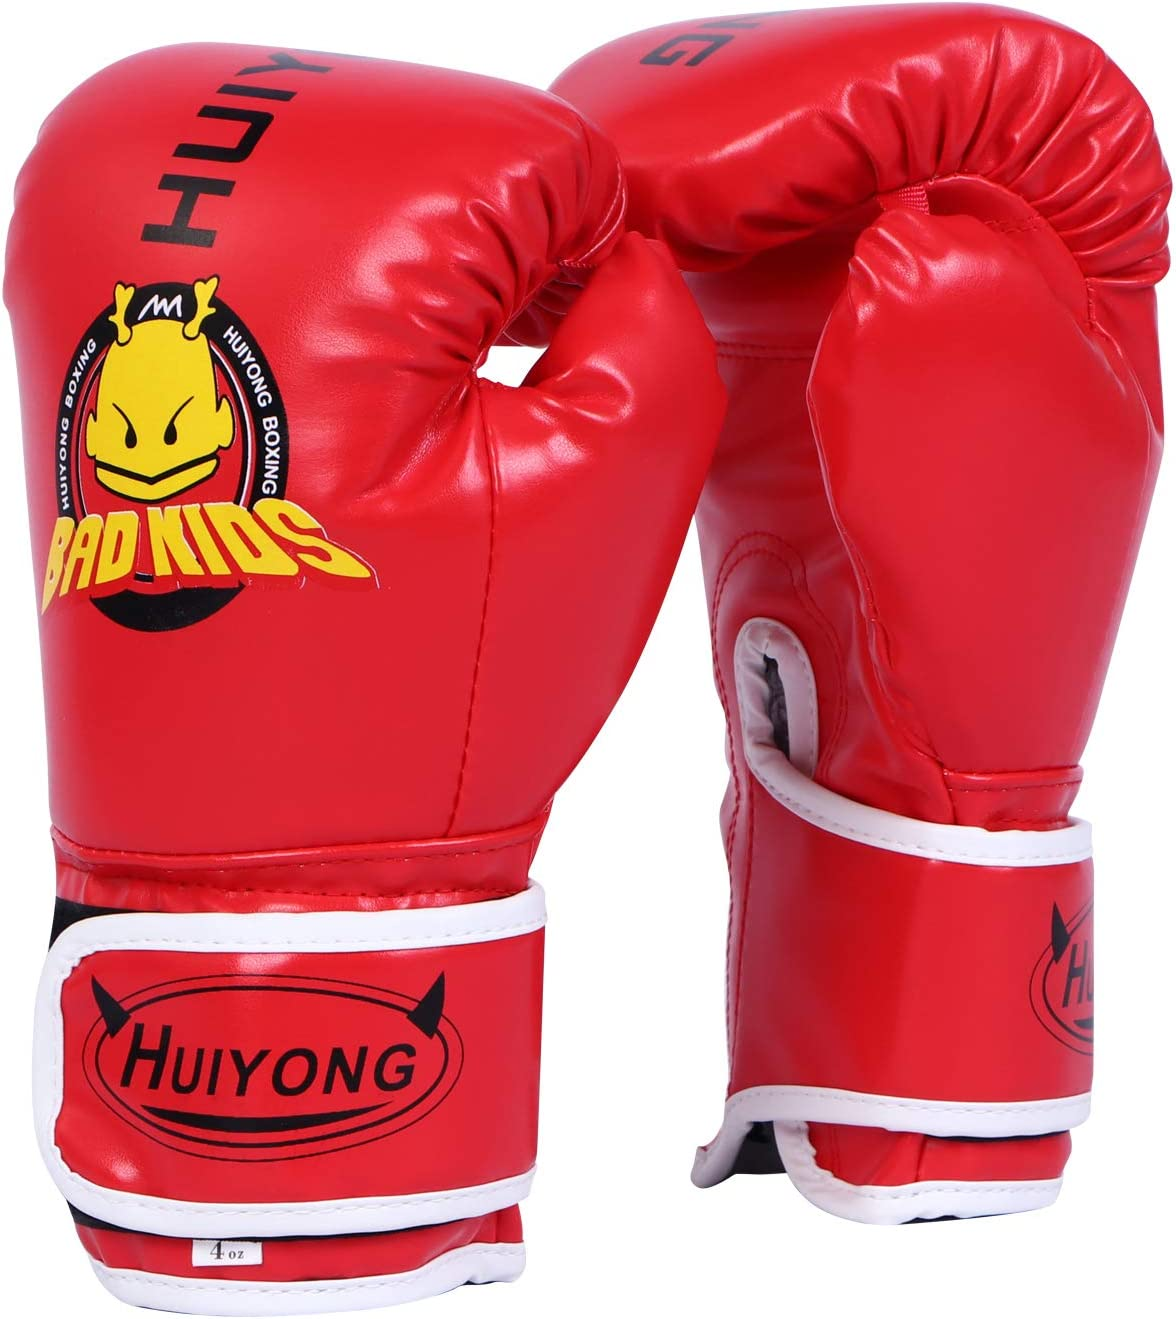 Boxing Gloves for Kids 6oz-10oz PU Fight Gloves Heavy Bag Mitts Kickboxing Gloves Youth Training Gloves for Muay Thai